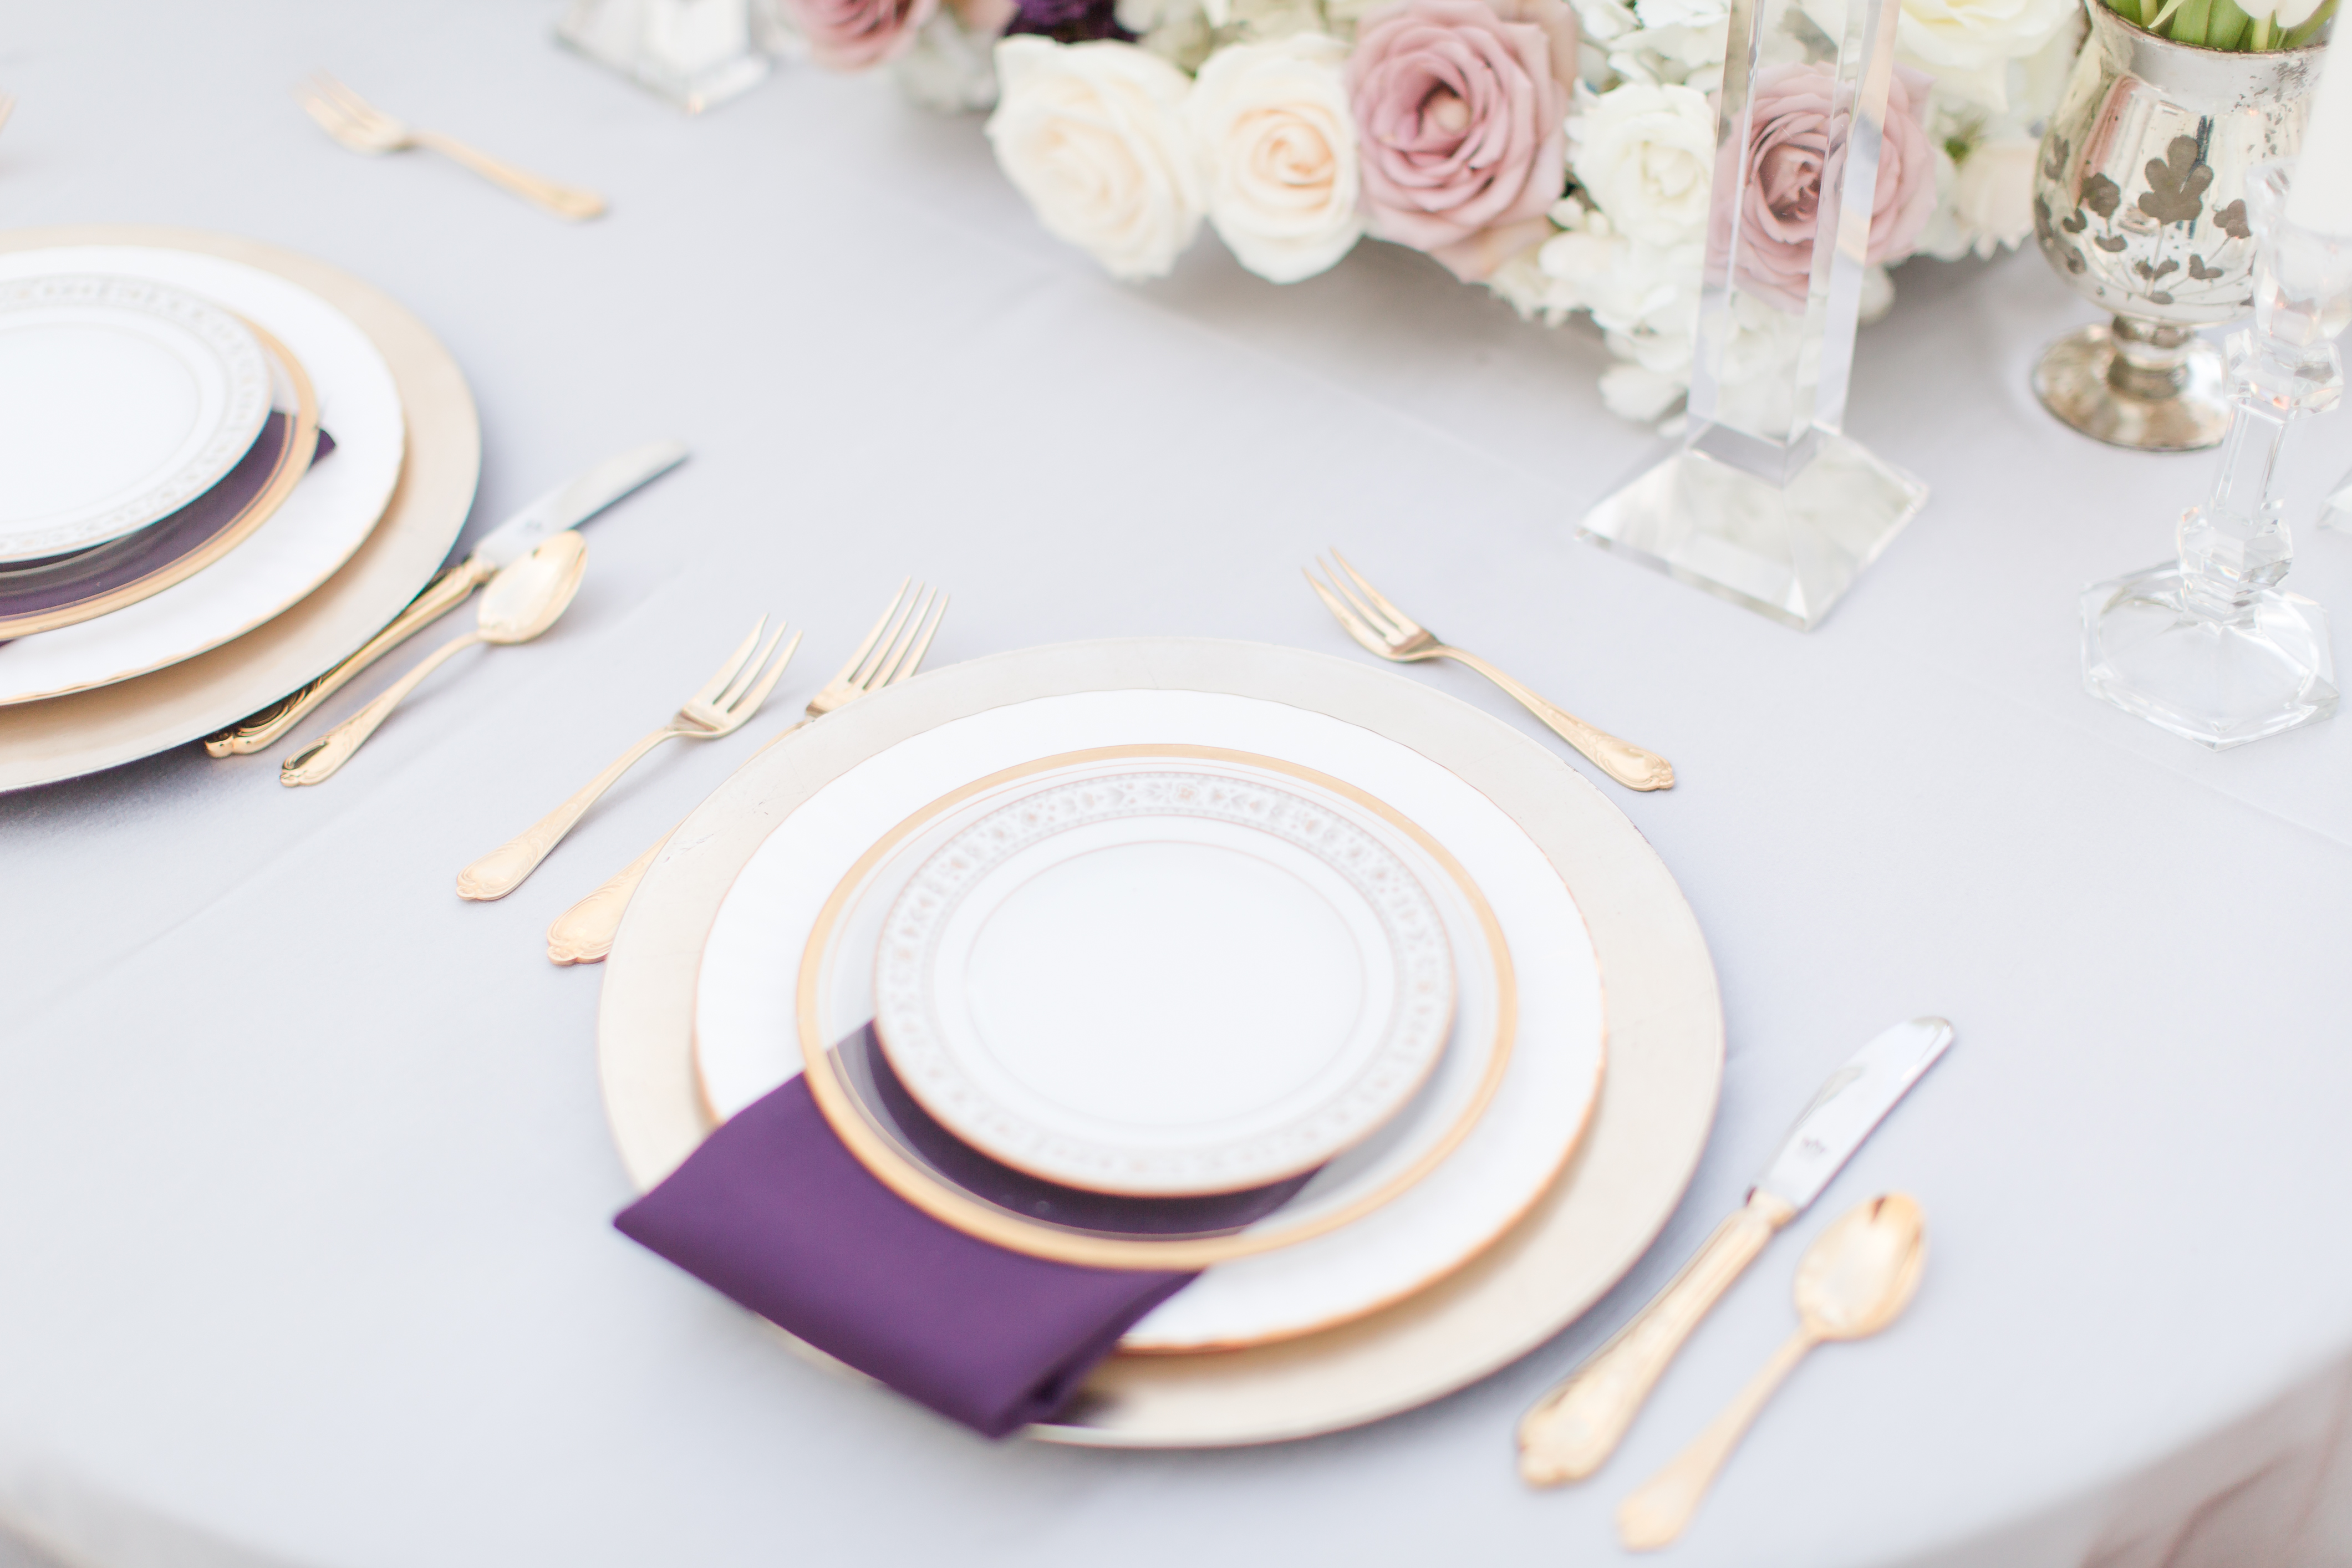 Lavender Silver place setting